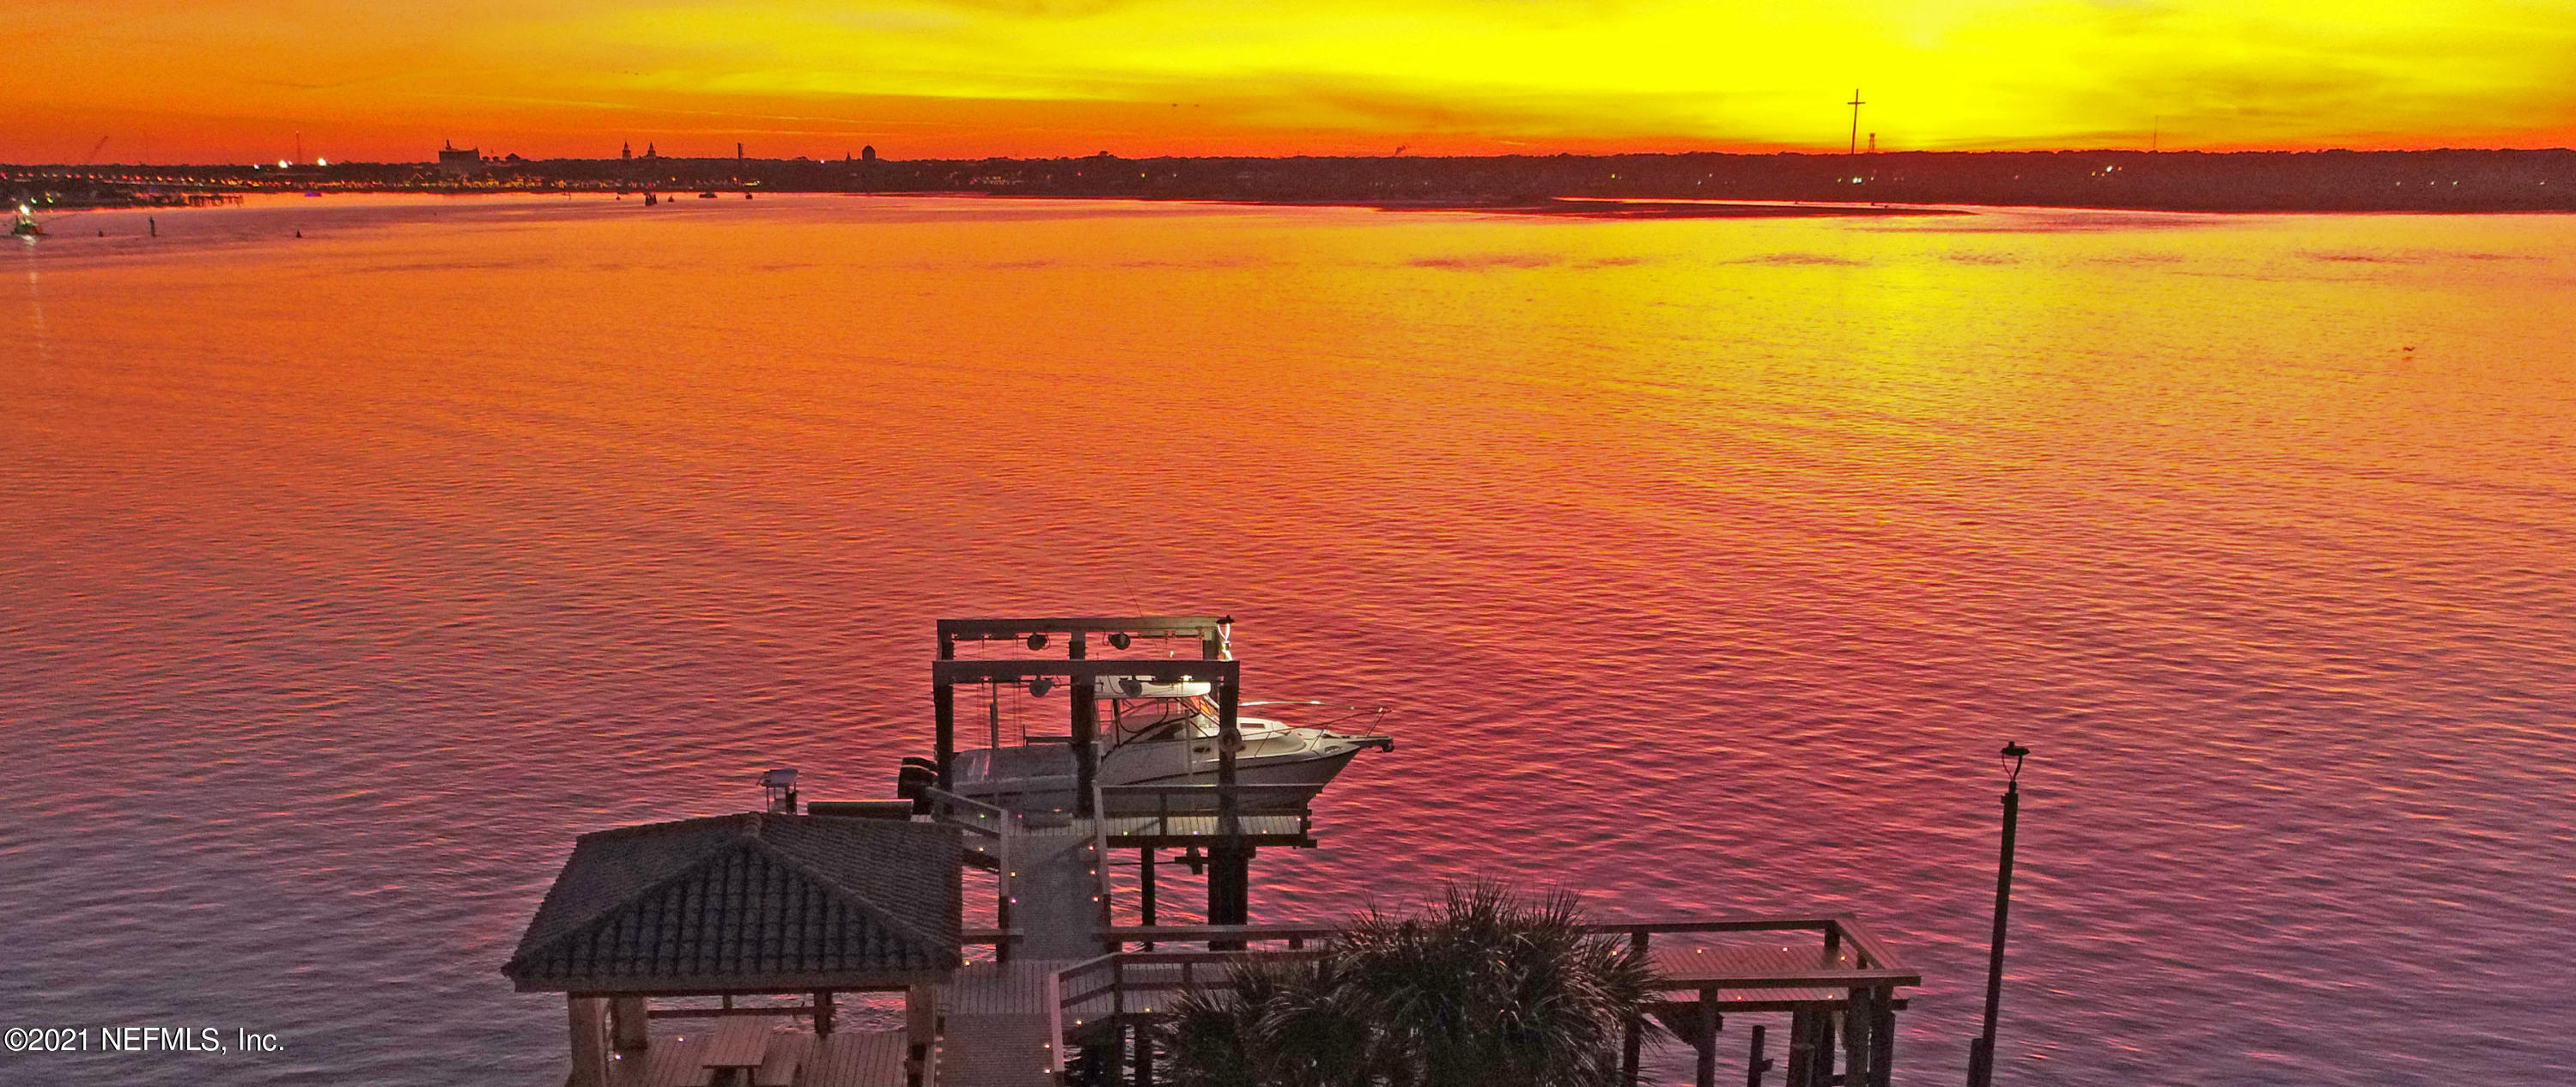 409 PORPOISE POINT, ST AUGUSTINE, FLORIDA 32084, 3 Bedrooms Bedrooms, ,4 BathroomsBathrooms,Residential,For sale,PORPOISE POINT,1104573